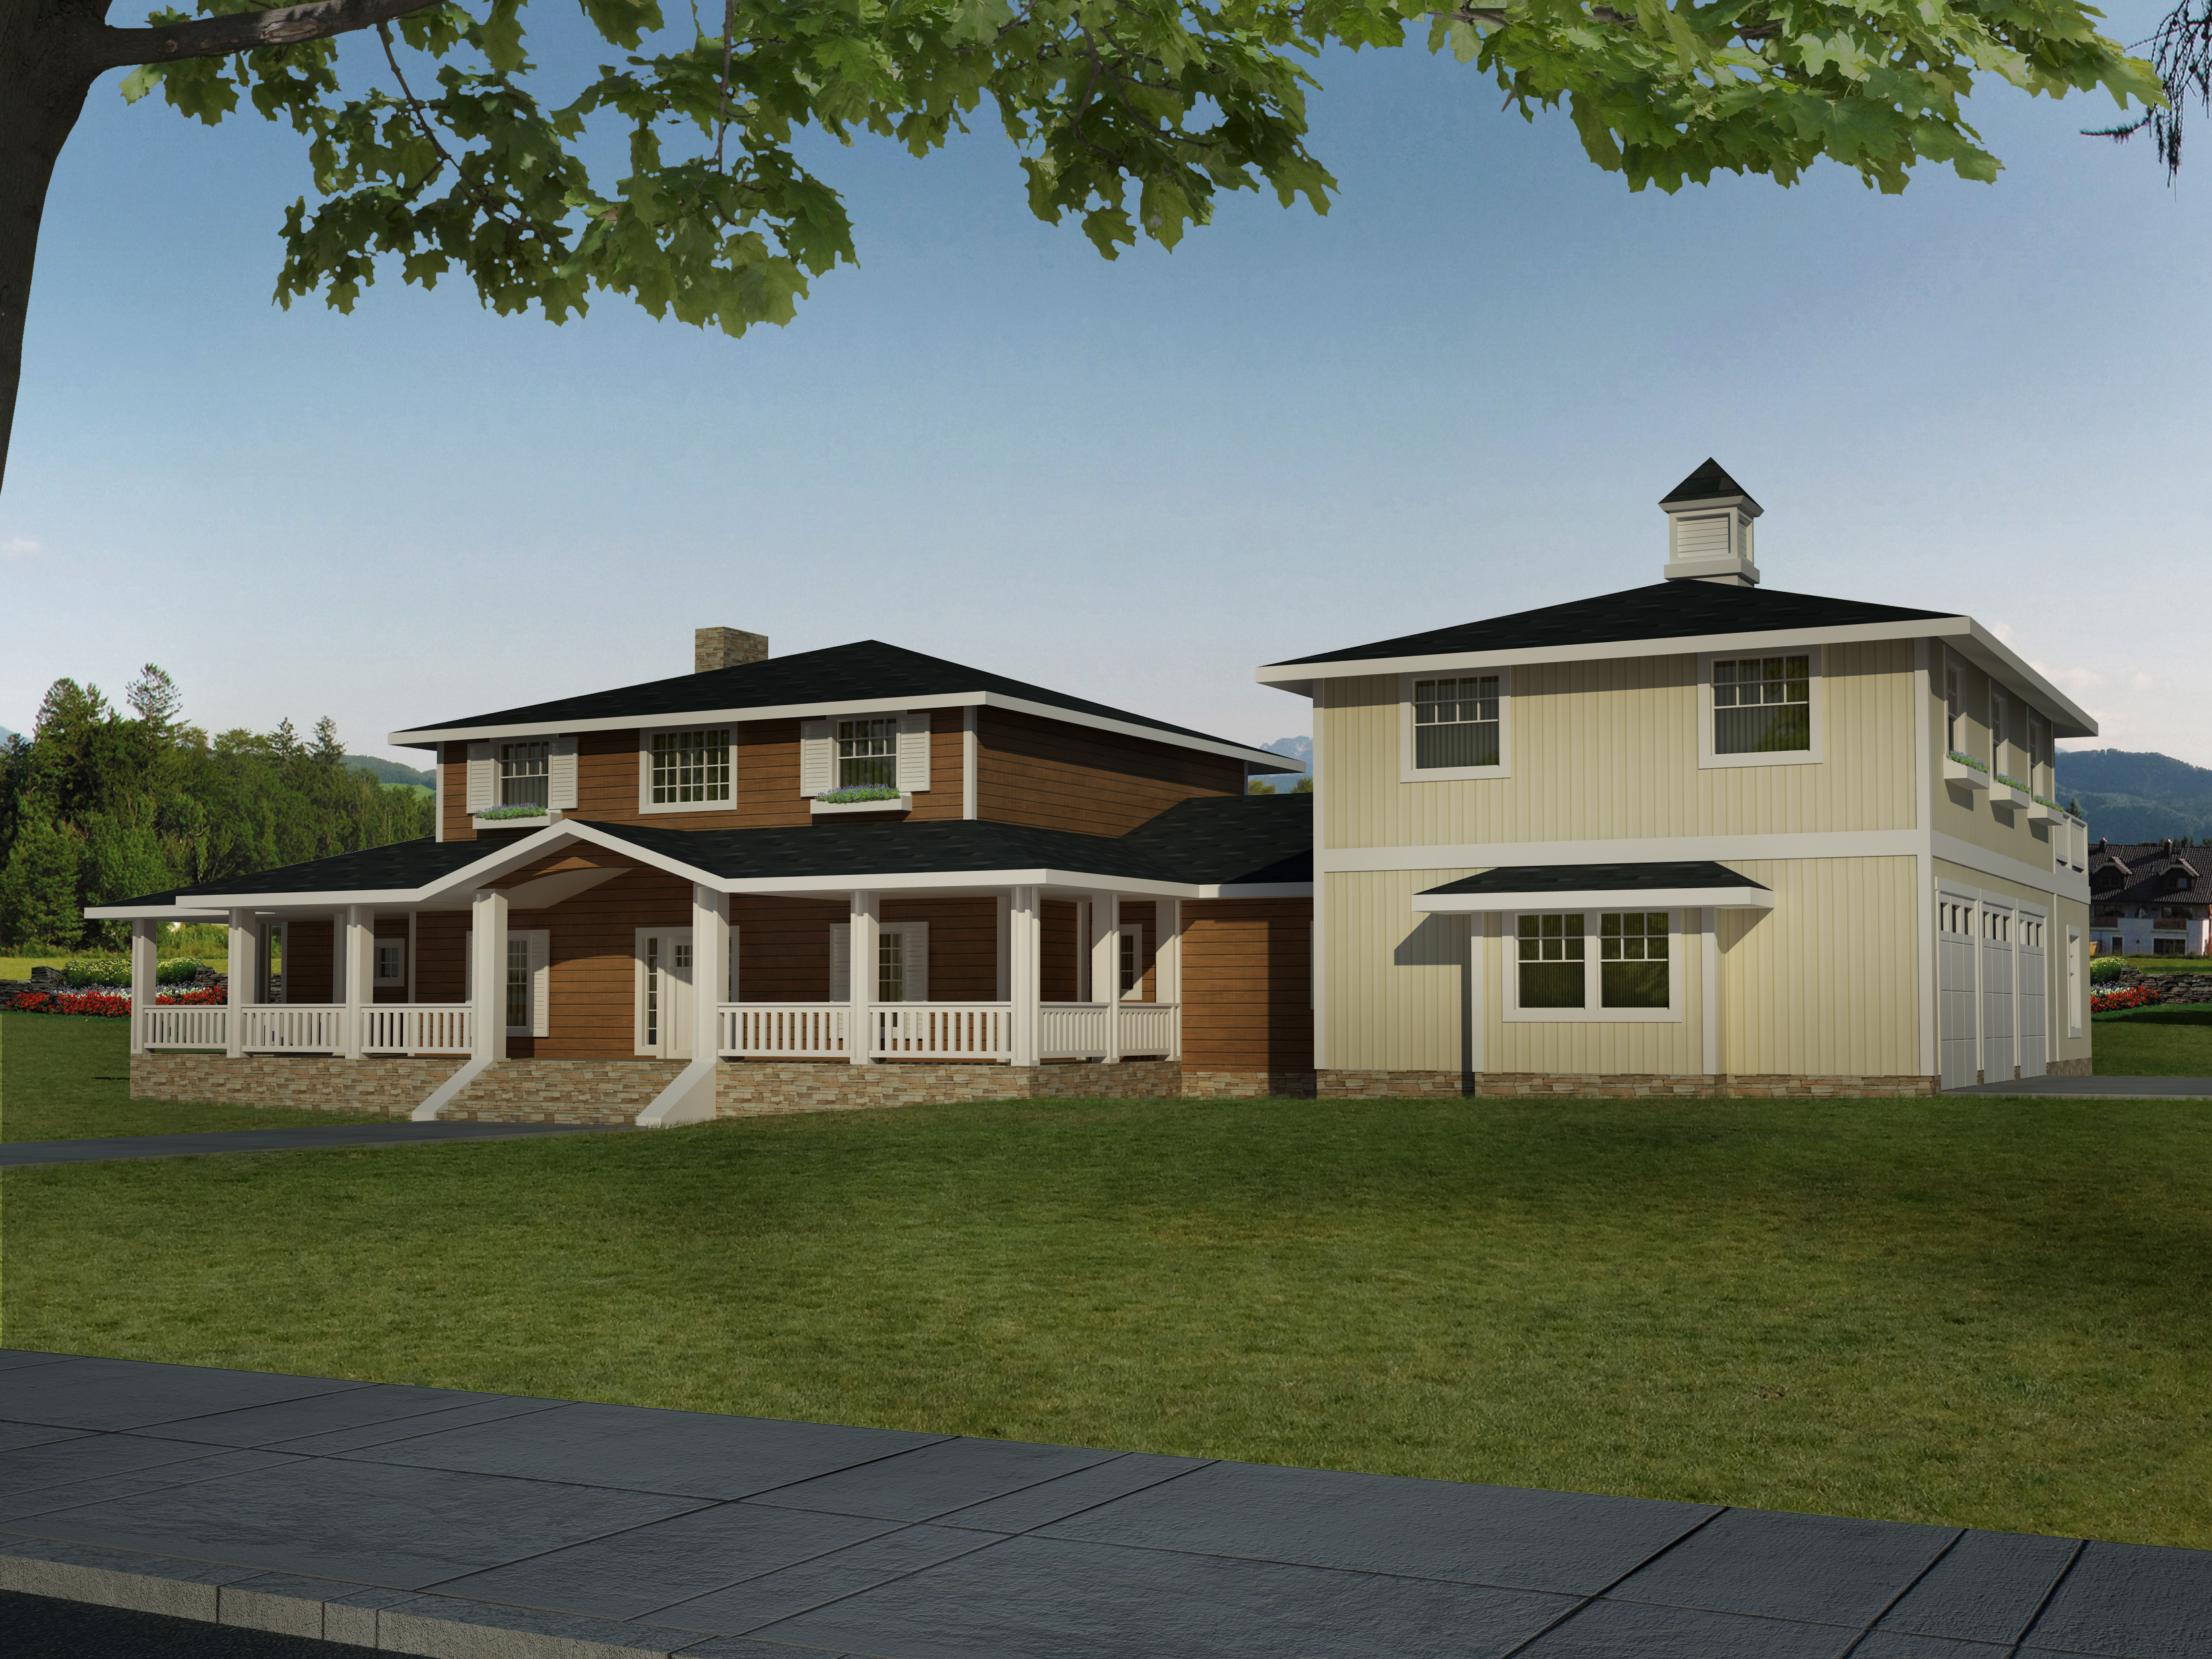 Transitional house plan 132 1547 4 bedrm 3579 sq ft for Transitional house plans